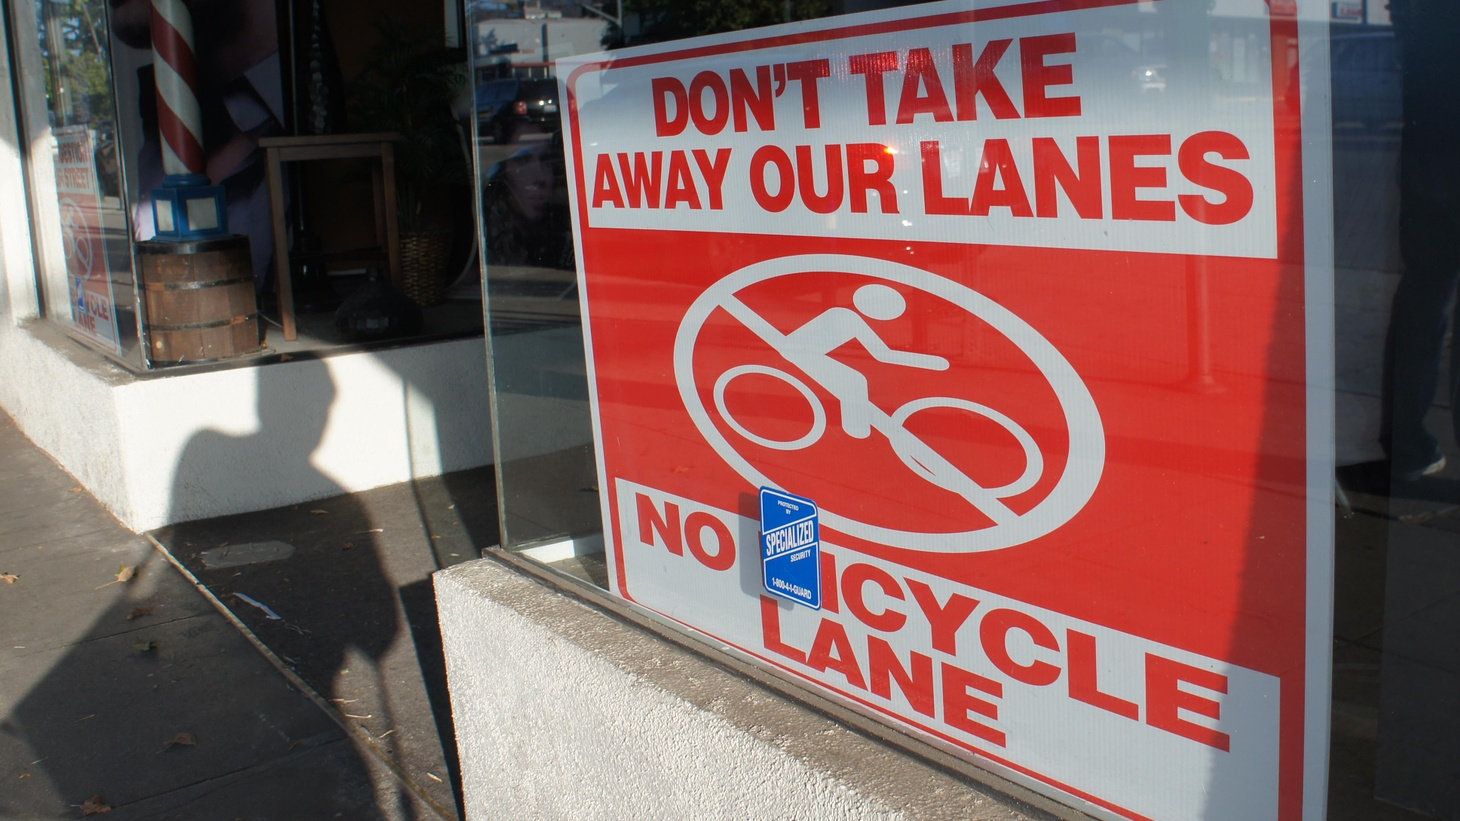 Los Angeles plans 1,600 miles of new bike lanes in the next 30 years, but for many drivers, bike lanes - and the cyclists who use them - are an increasing source of road rage.